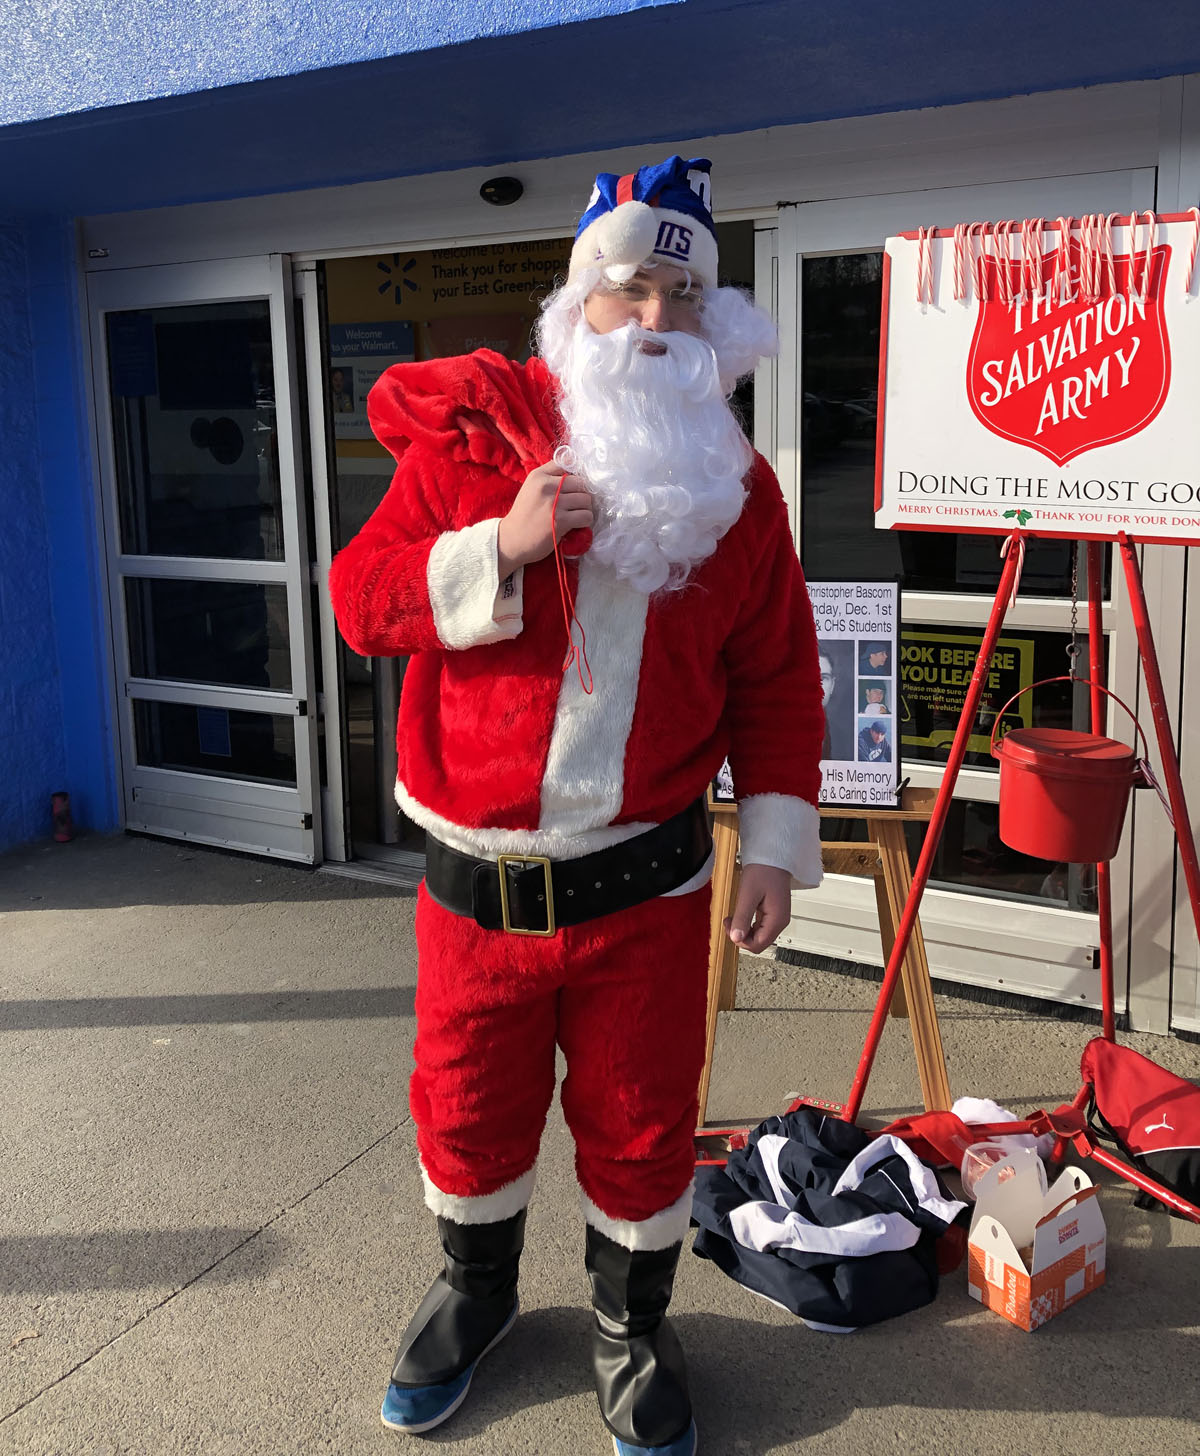 Student dressed as Santa Claus collecting money for Salvation Army outside of Walmart